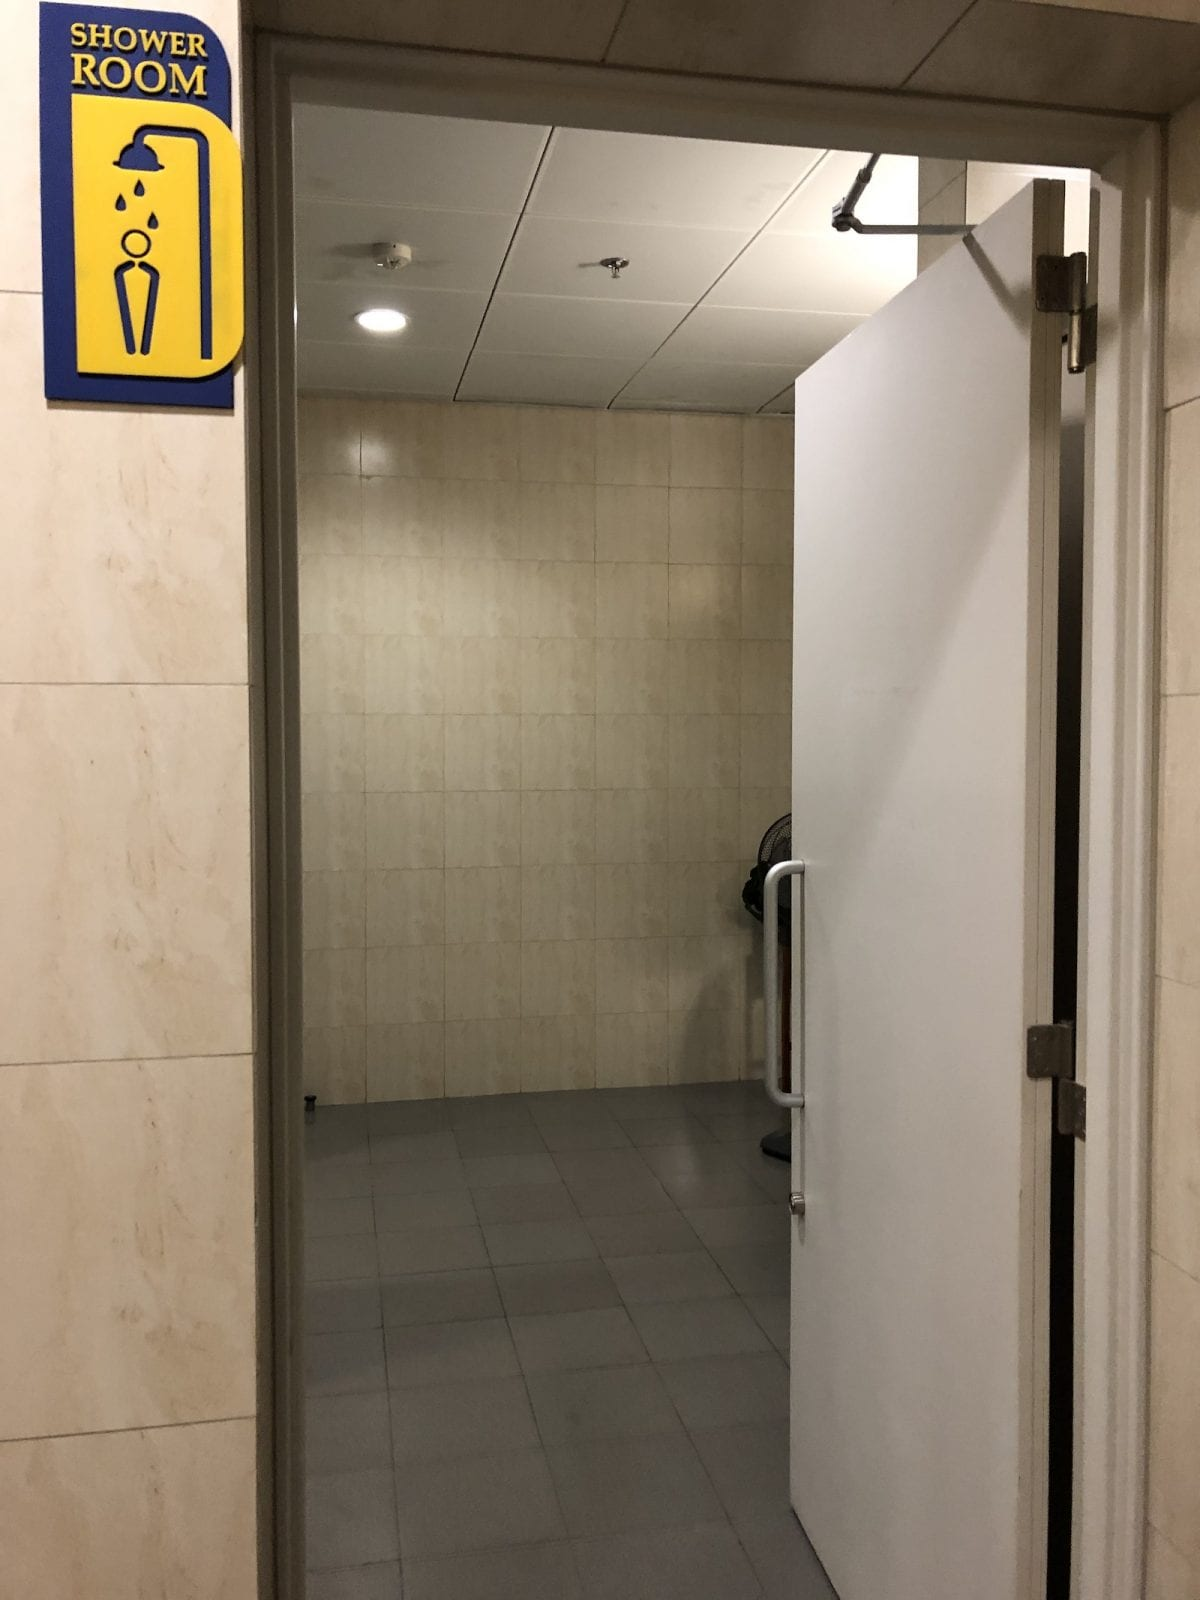 Shower room at Toilet at entrance to Sông Hồng Business Lounge, Noi Bai International Airport